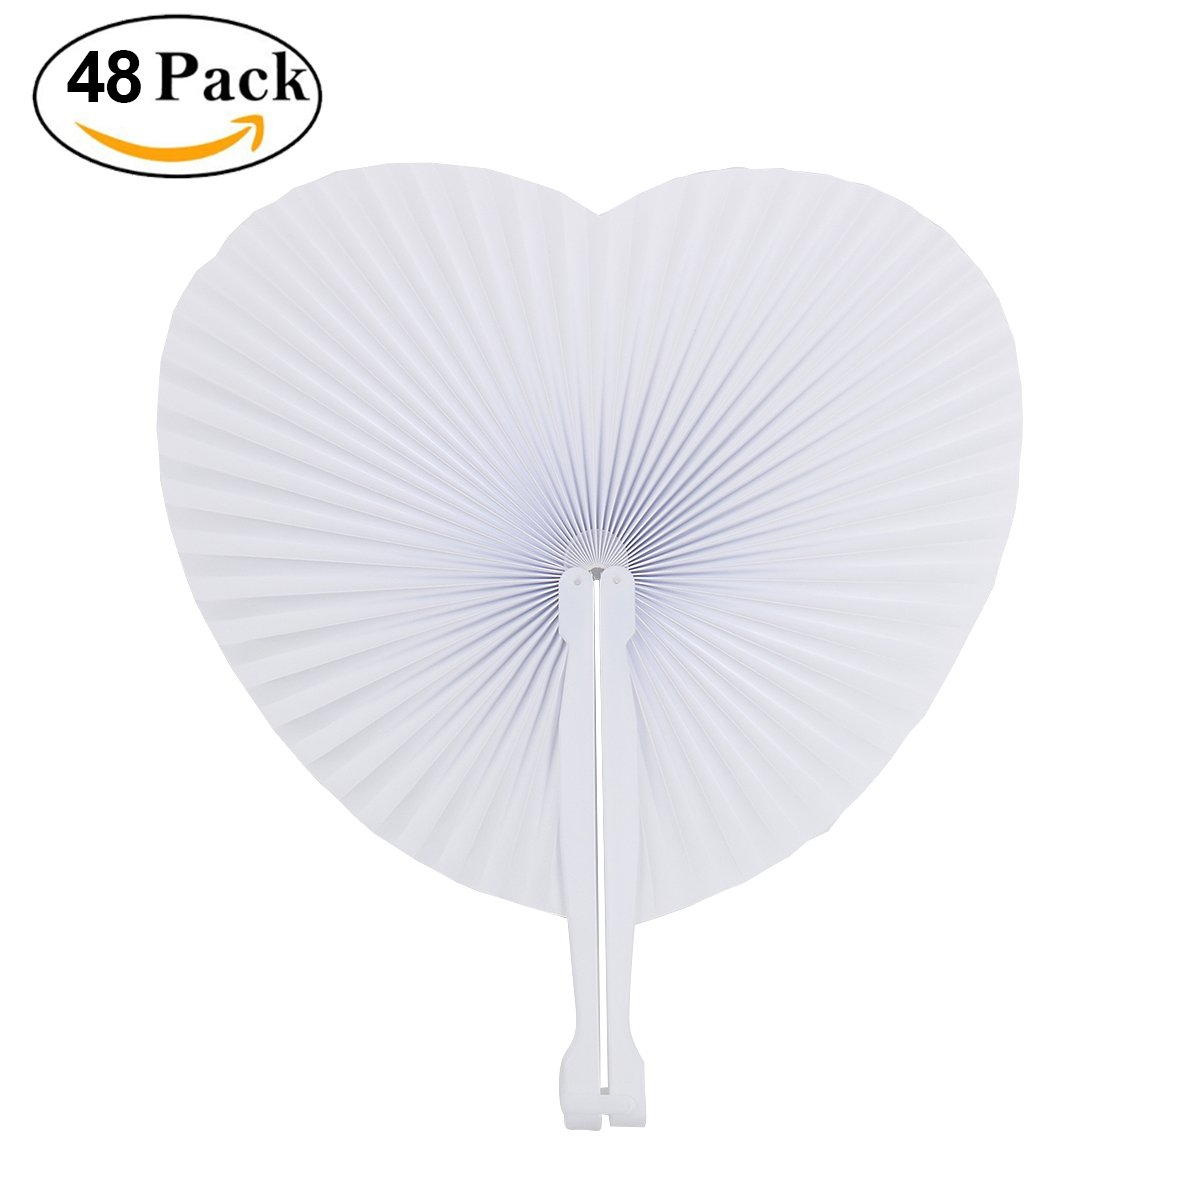 Amazon.com: Cusfull 48 Pack White Folding Paper Fans Handheld Paper ...